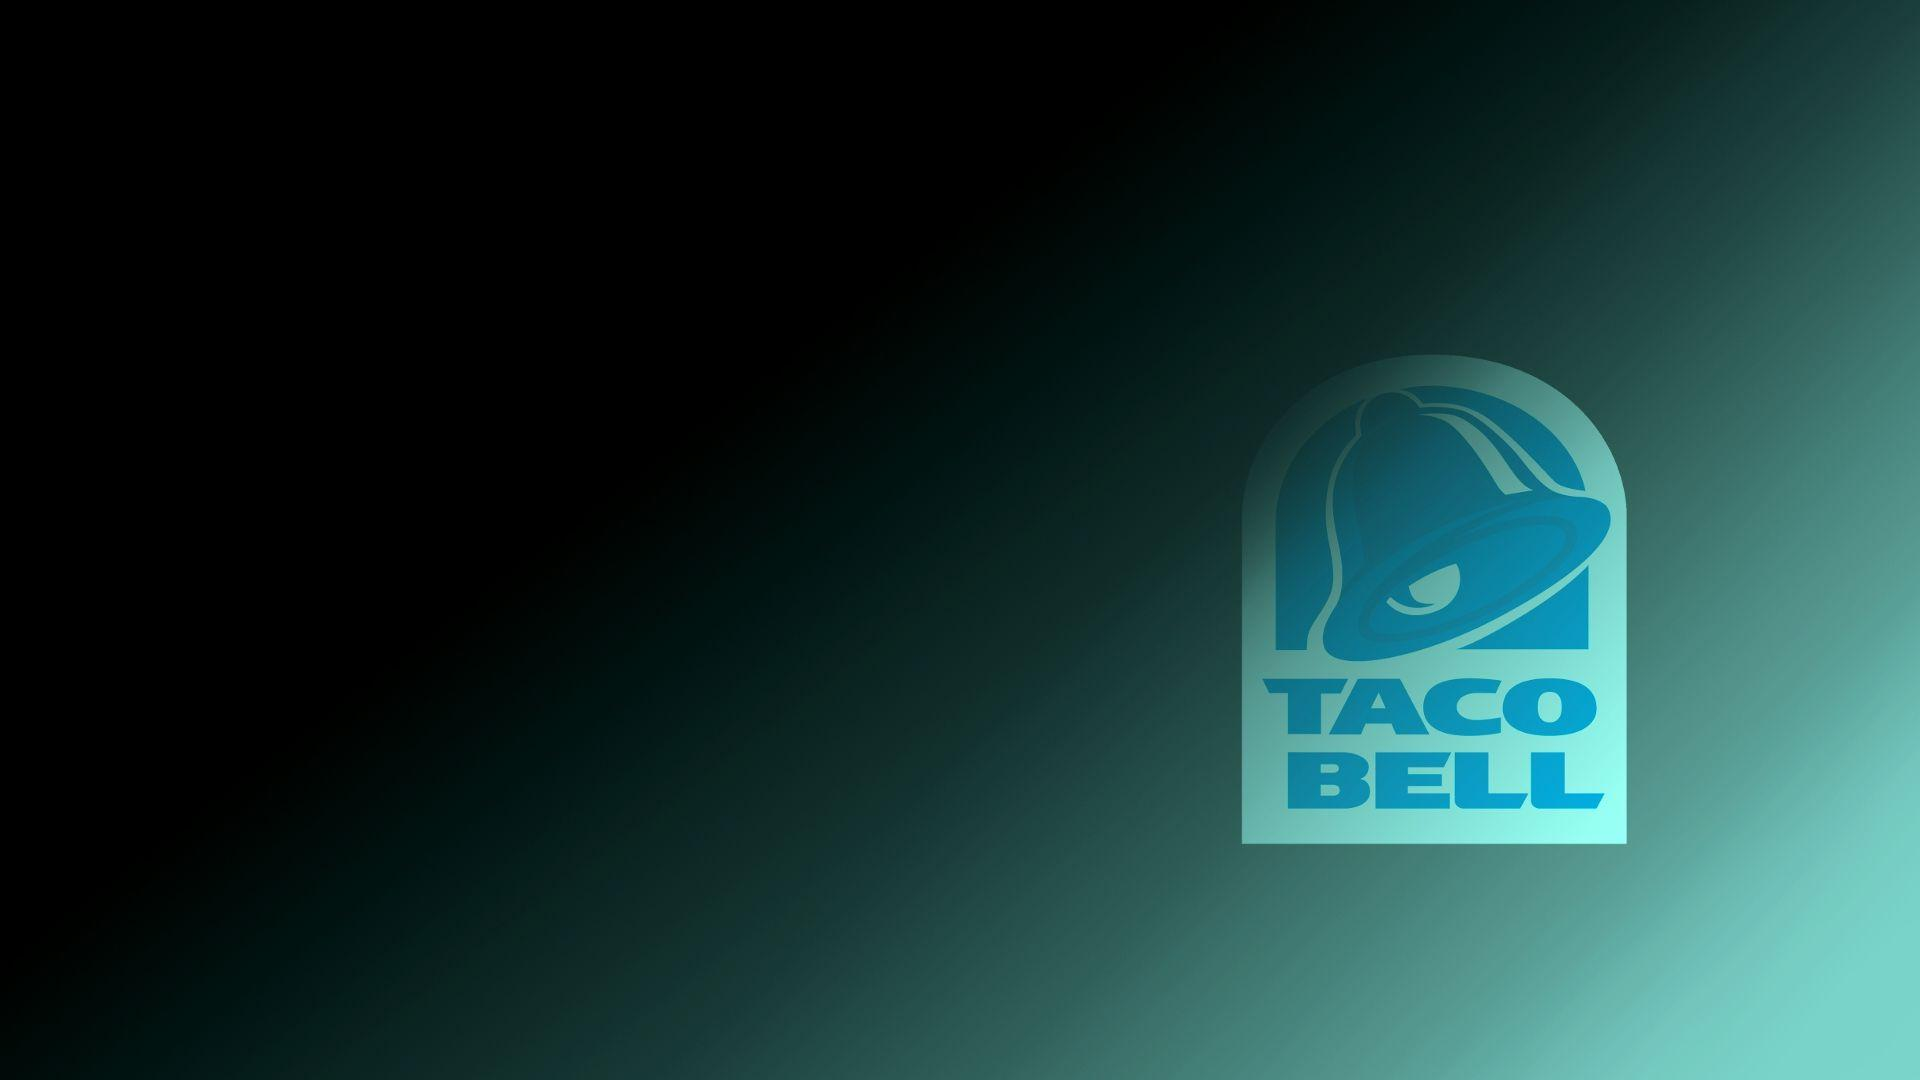 Download the Taco Bell Wallpaper, Taco Bell iPhone Wallpaper, Taco ...